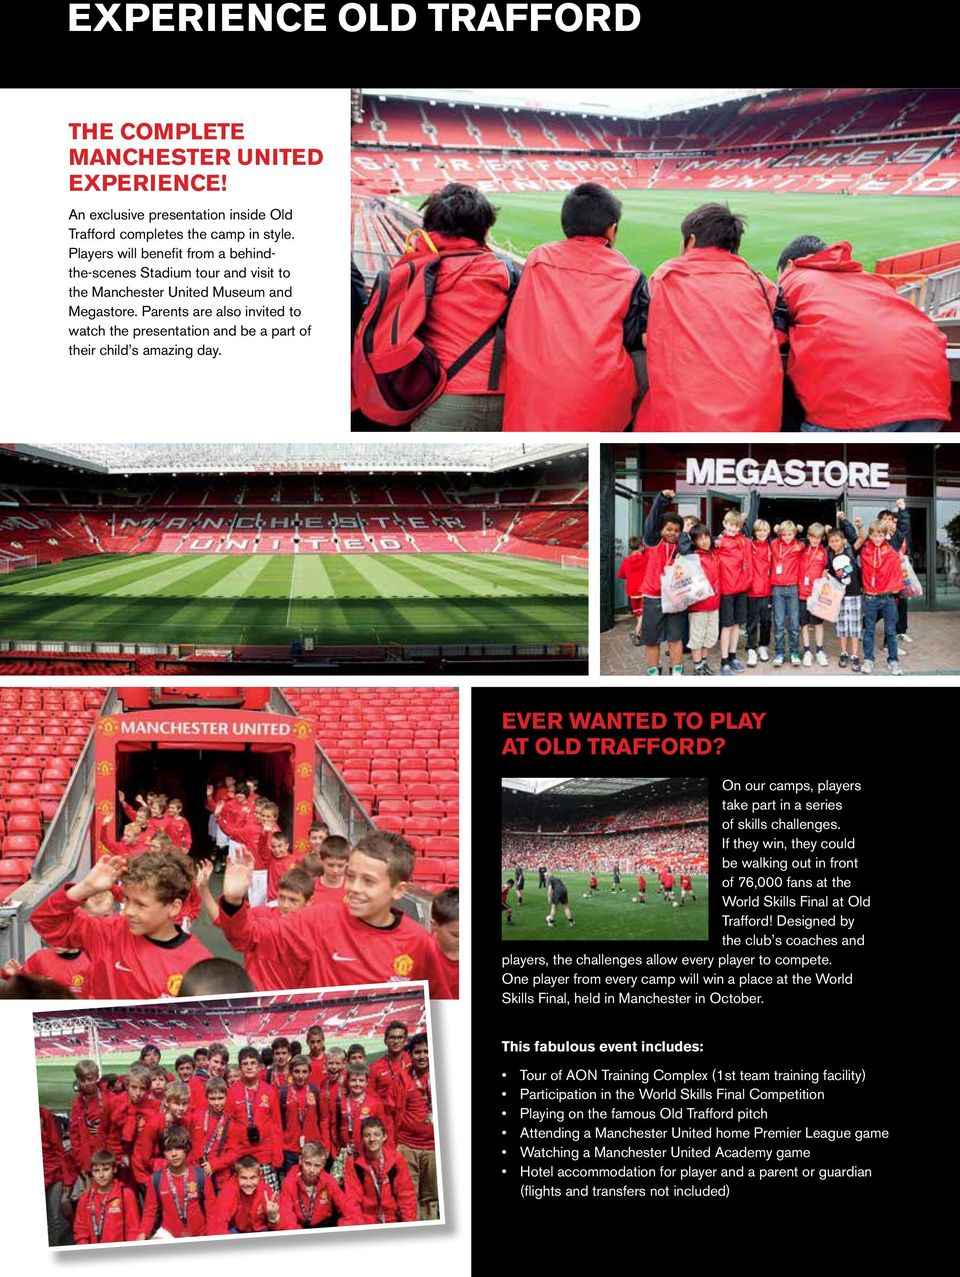 Parents are also invited to watch the presentation and be a part of their child s amazing day. EVER WANTED TO PLAY AT OLD TRAFFORD? On our camps, players take part in a series of skills challenges.